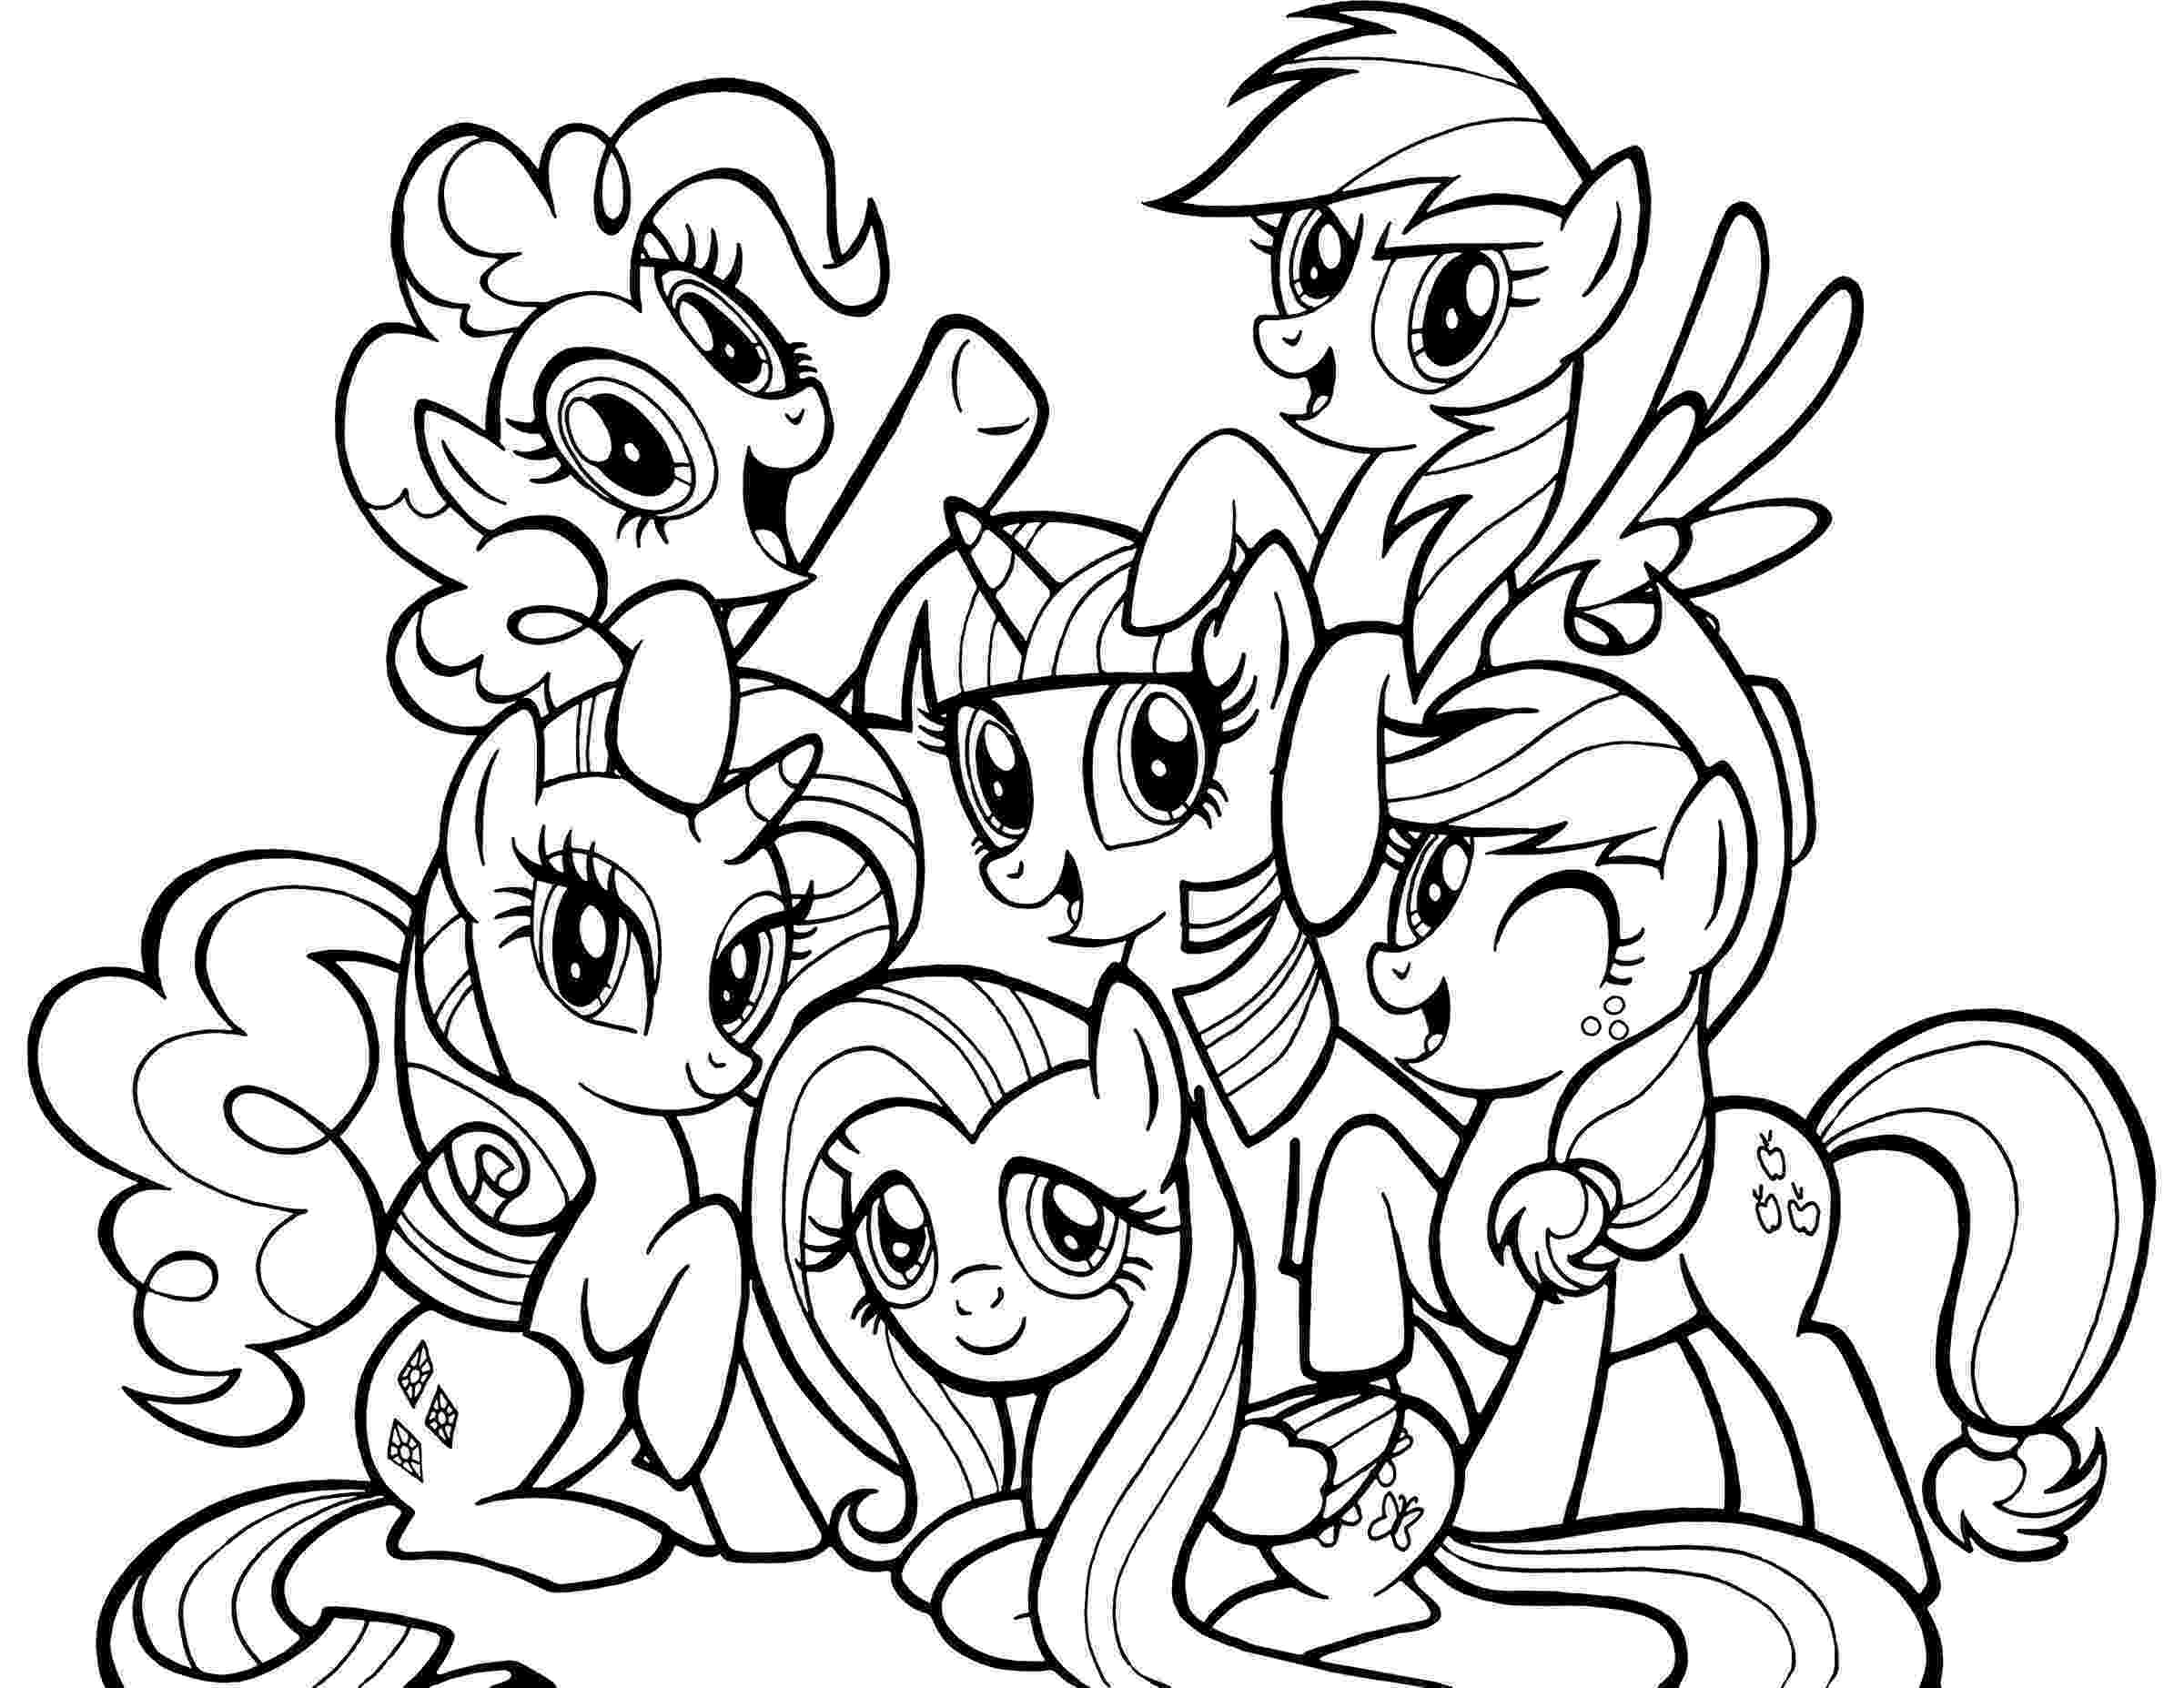 coloring pages of ponies ponies from ponyville coloring pages free printable of pages ponies coloring